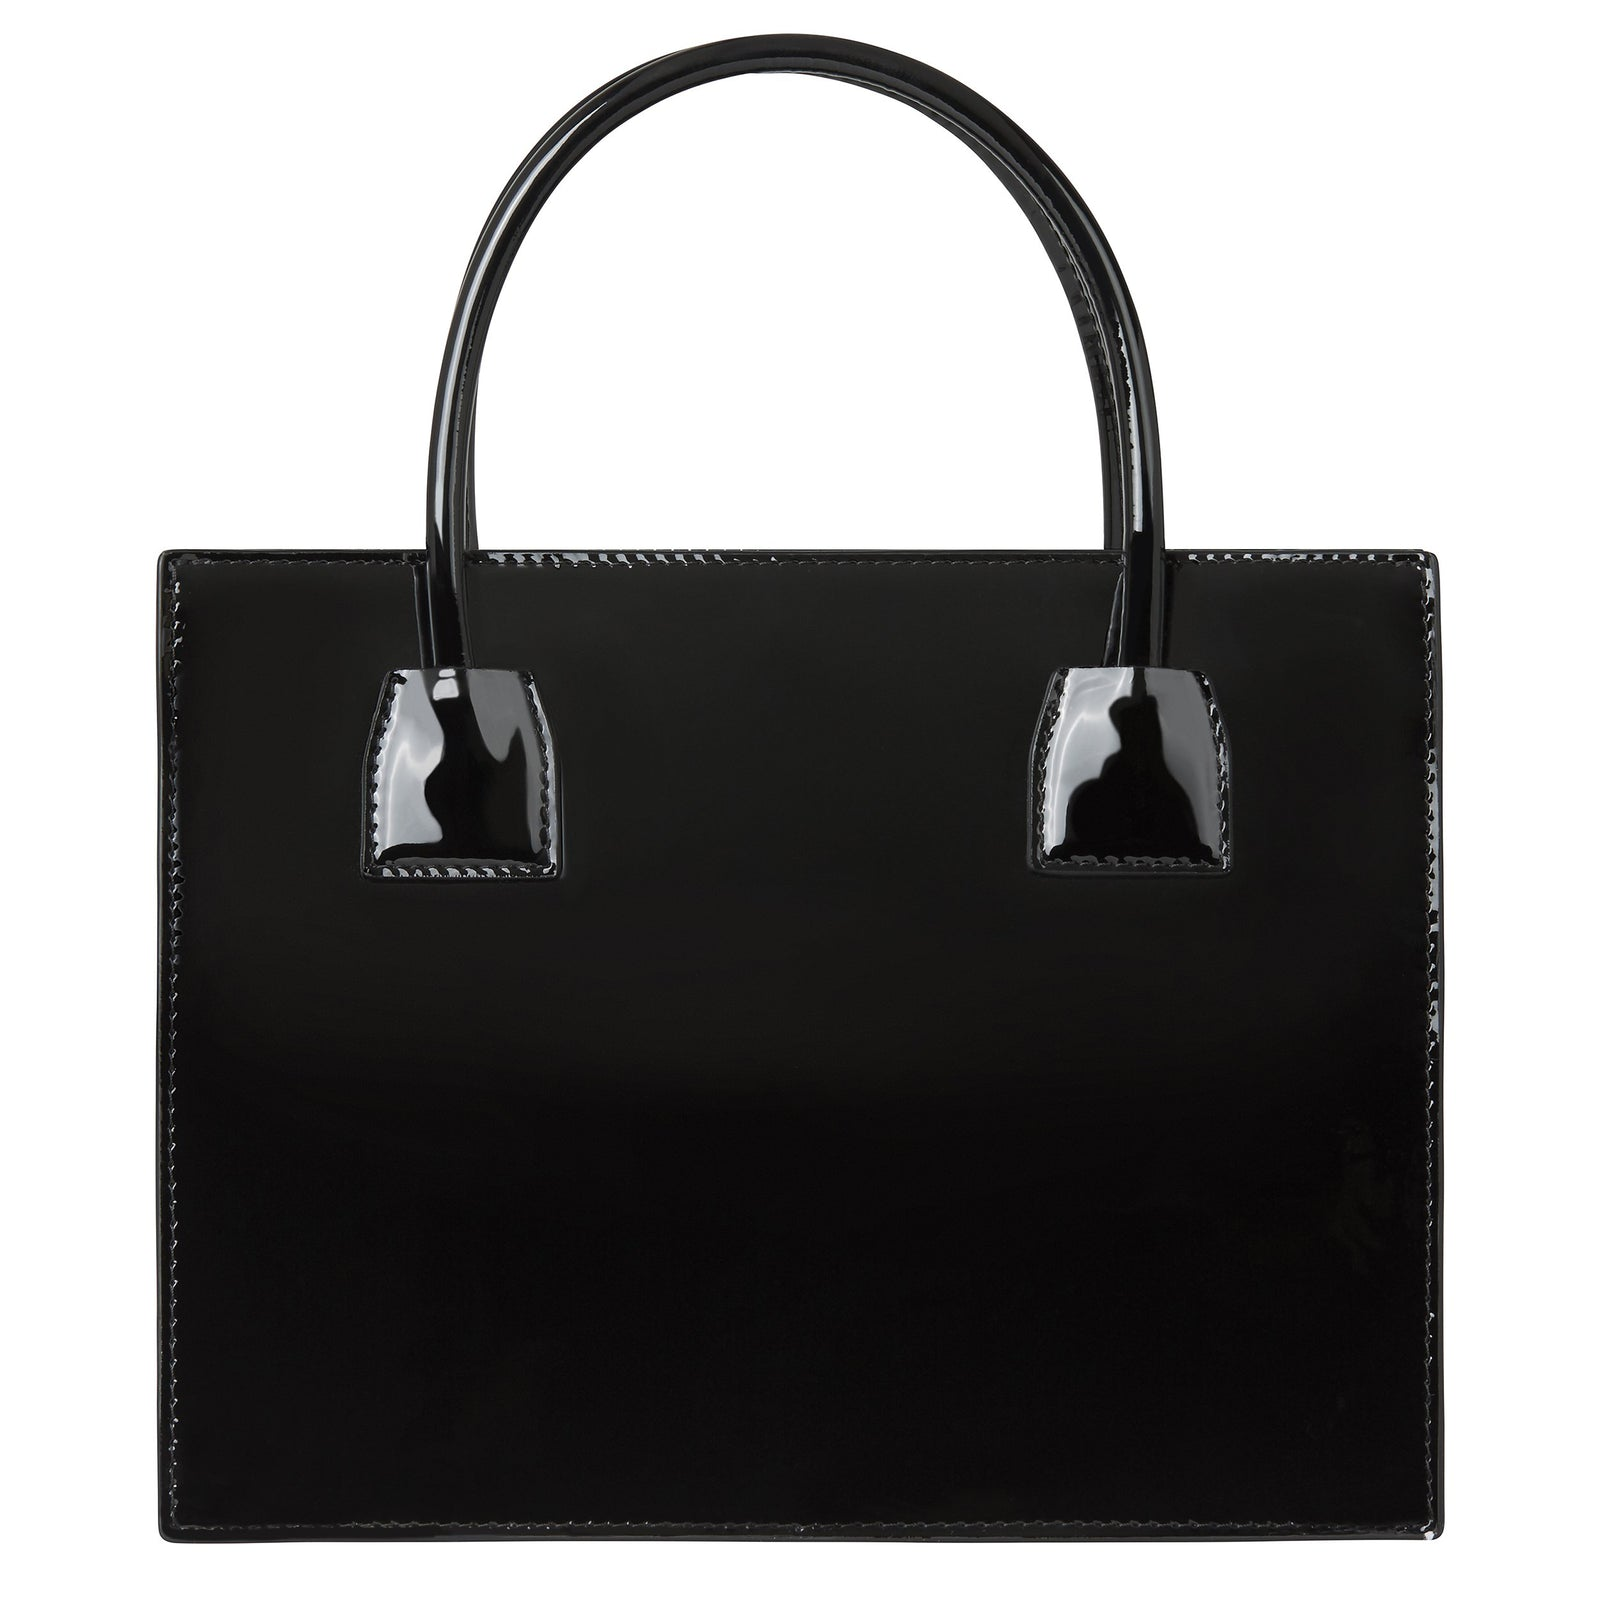 Mini Tote Black Patent